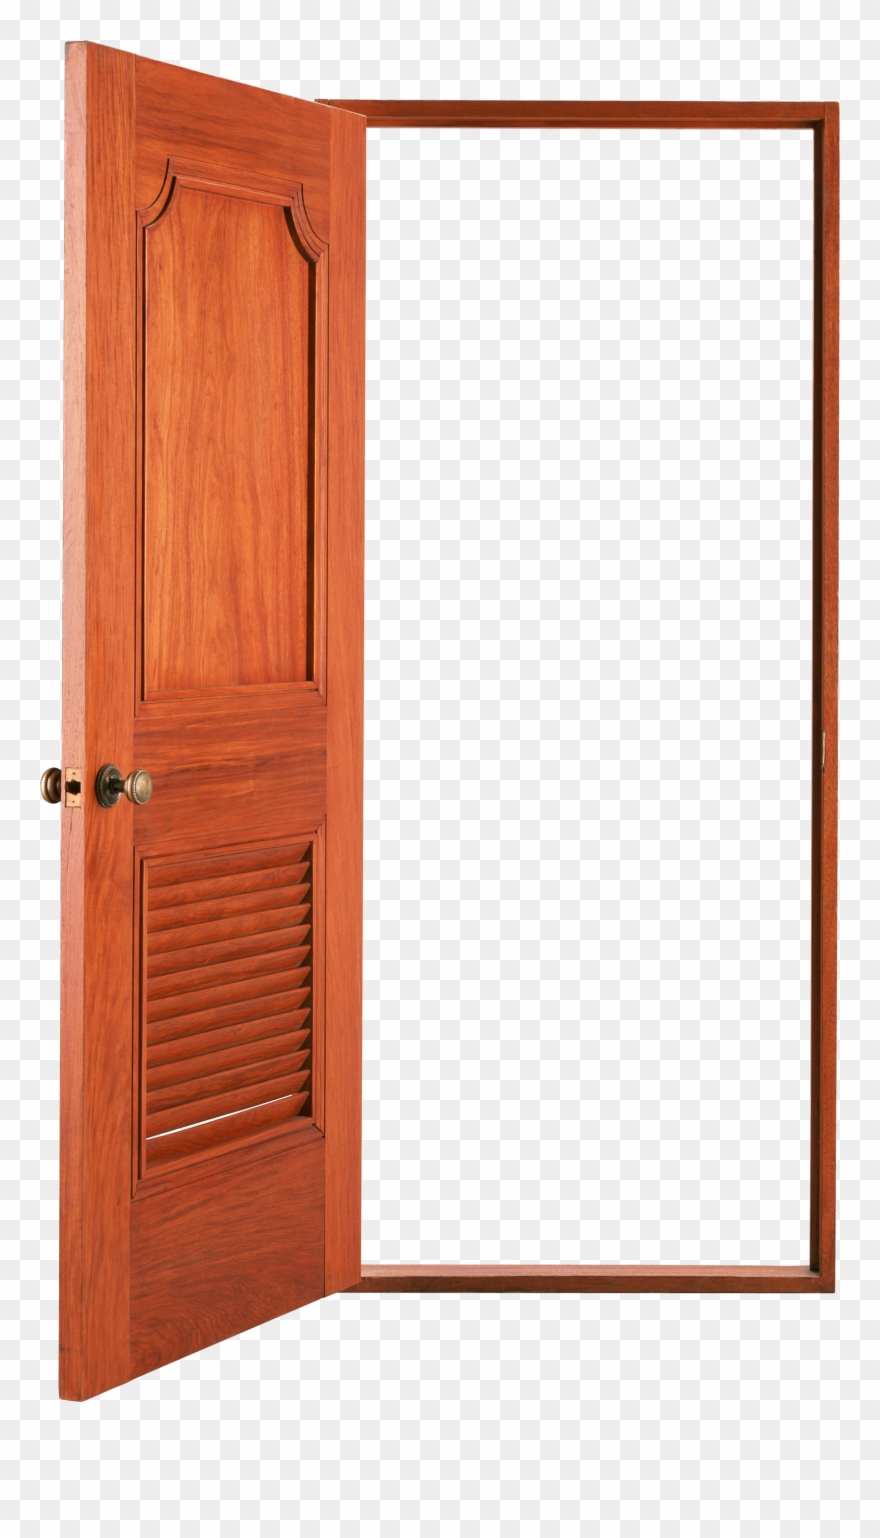 Open Door Png Clip Art For A New Year S Resolution.